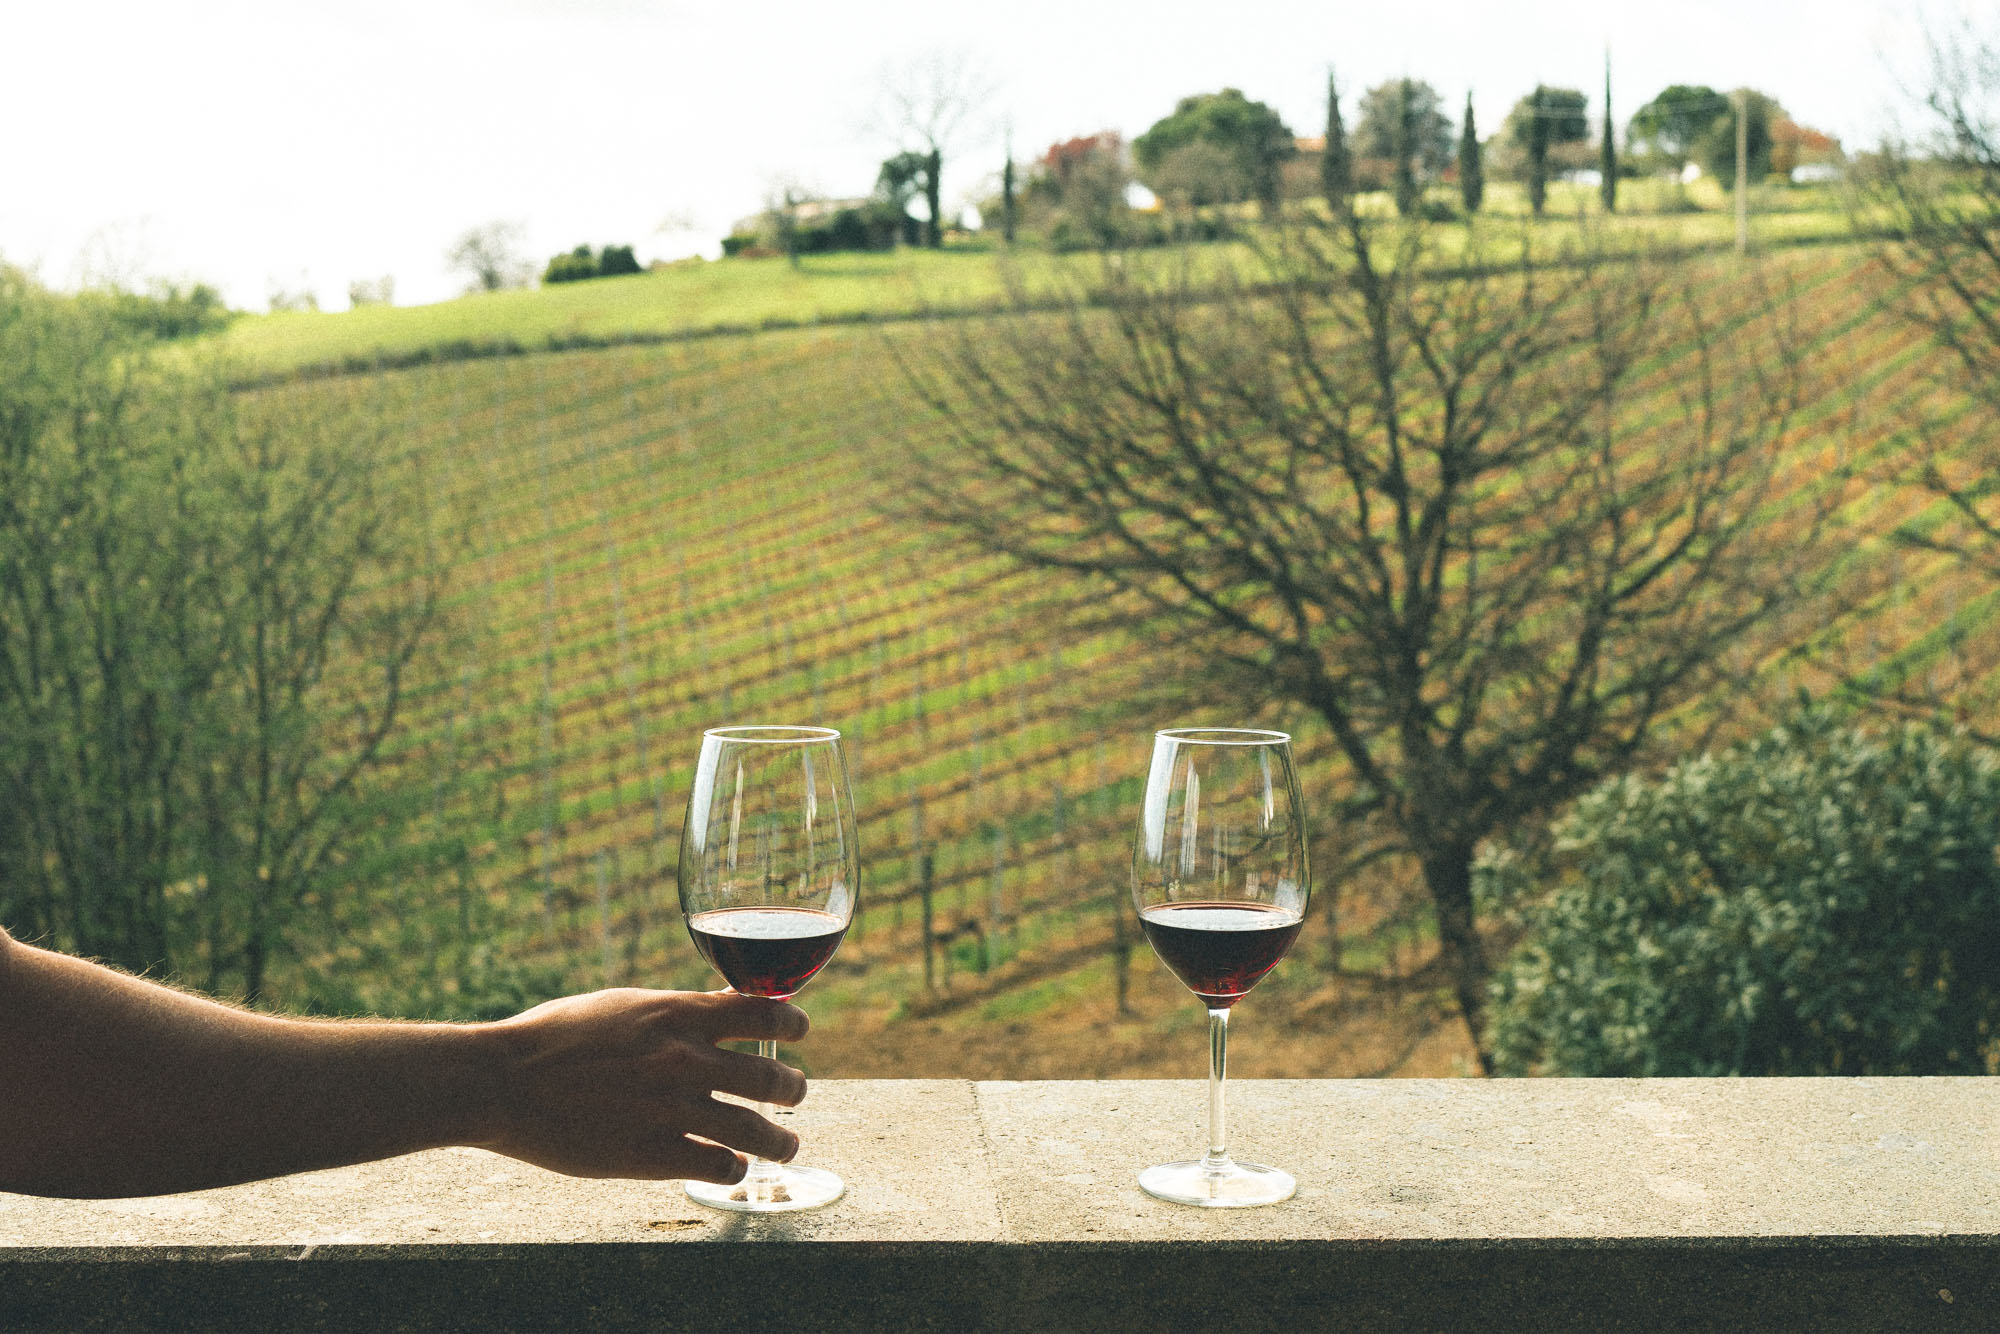 Wine tasting in southern Tuscany, Italy